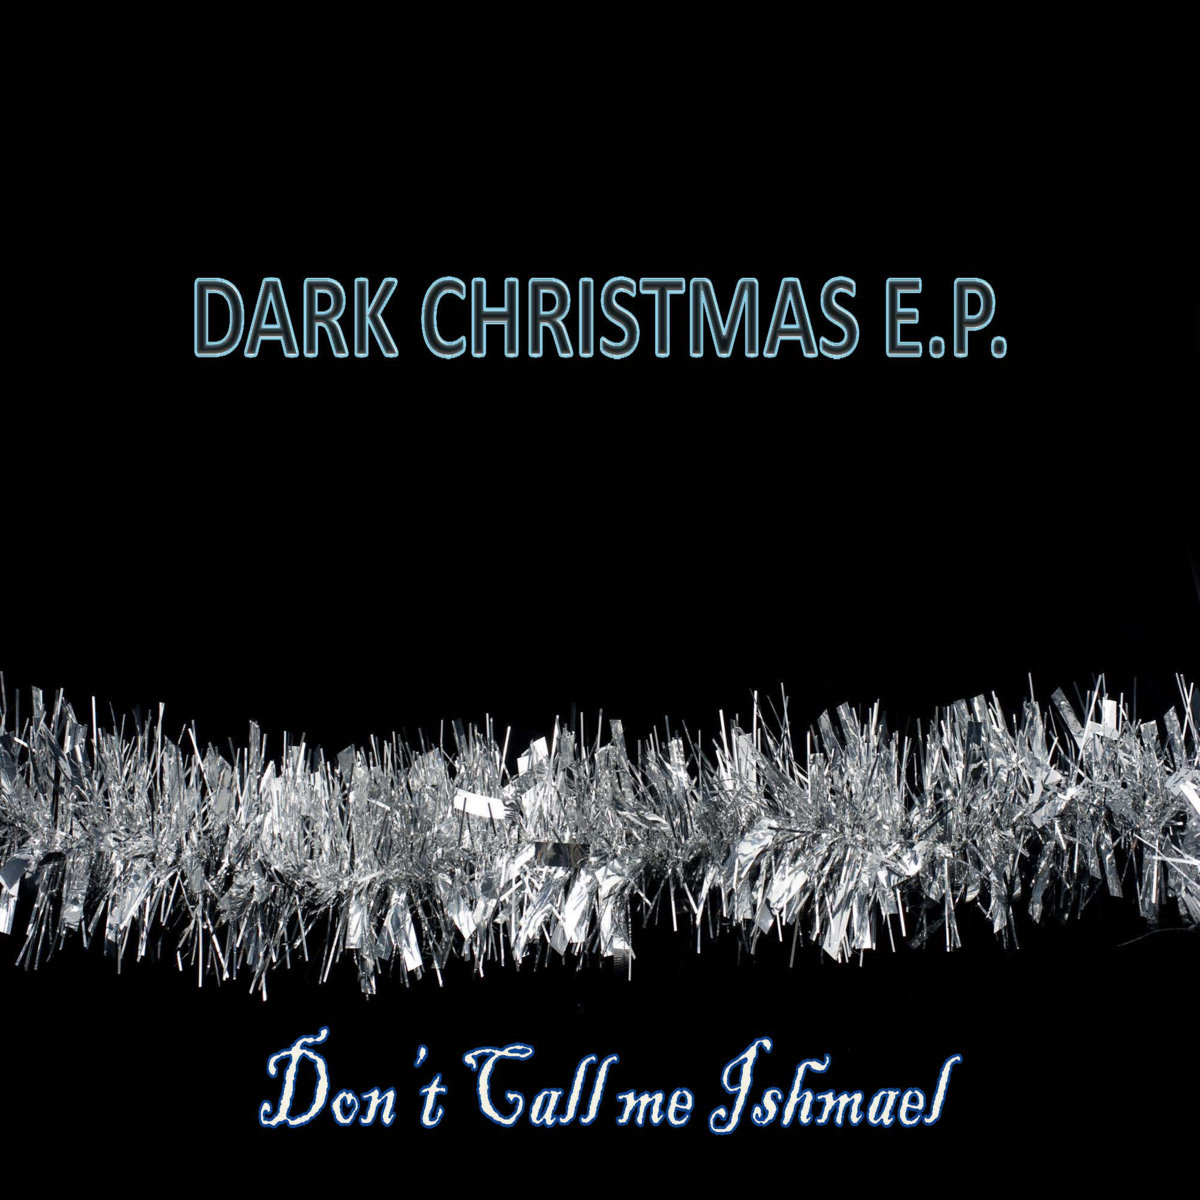 Don't Call me Ishmael Dark Christmas E.P.